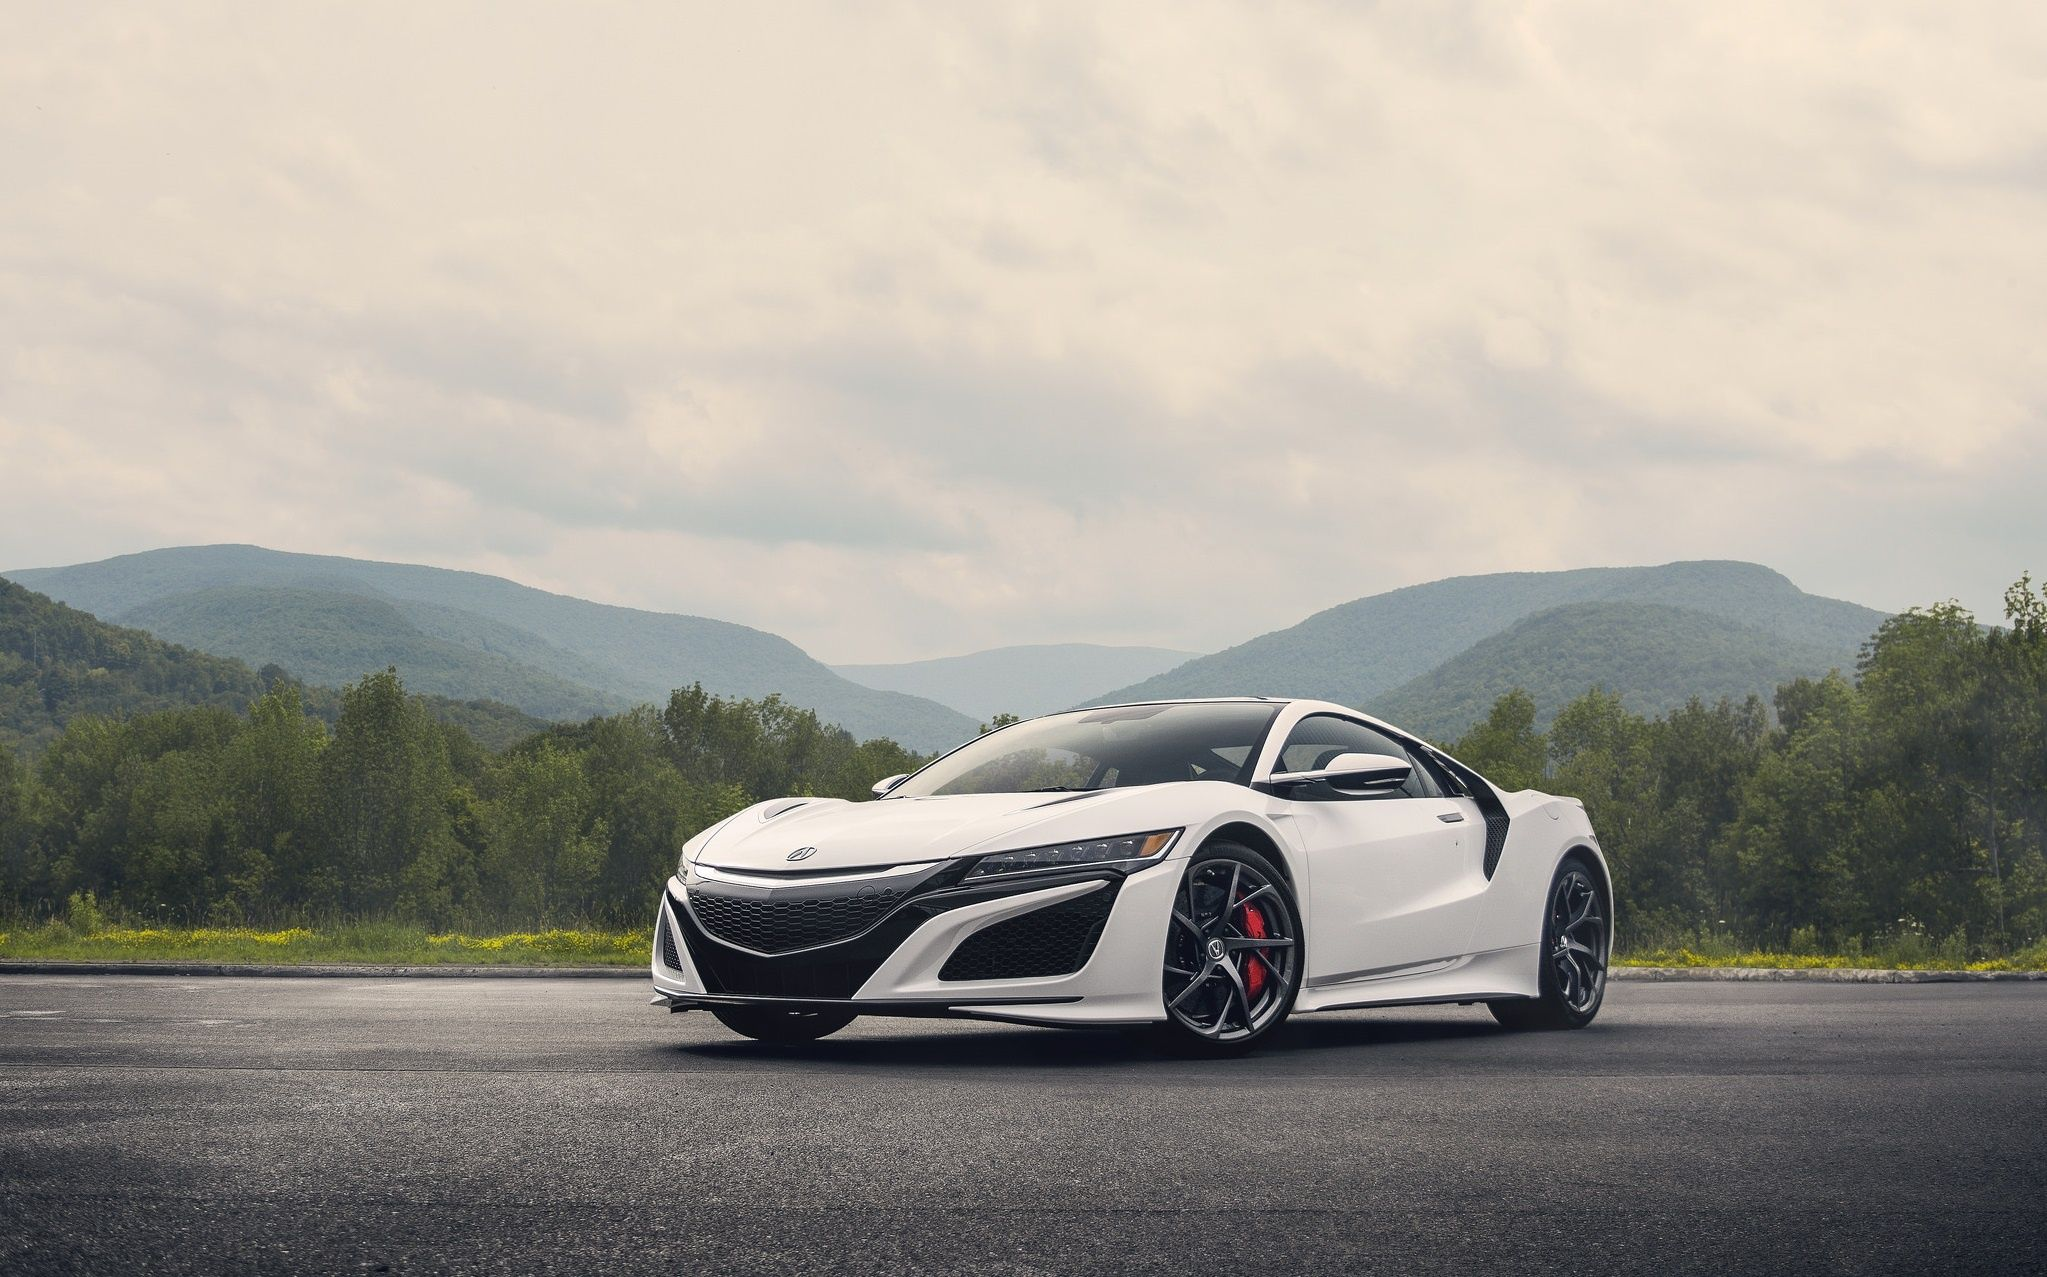 Nsx 4k Wallpapers Top Free Nsx 4k Backgrounds Wallpaperaccess